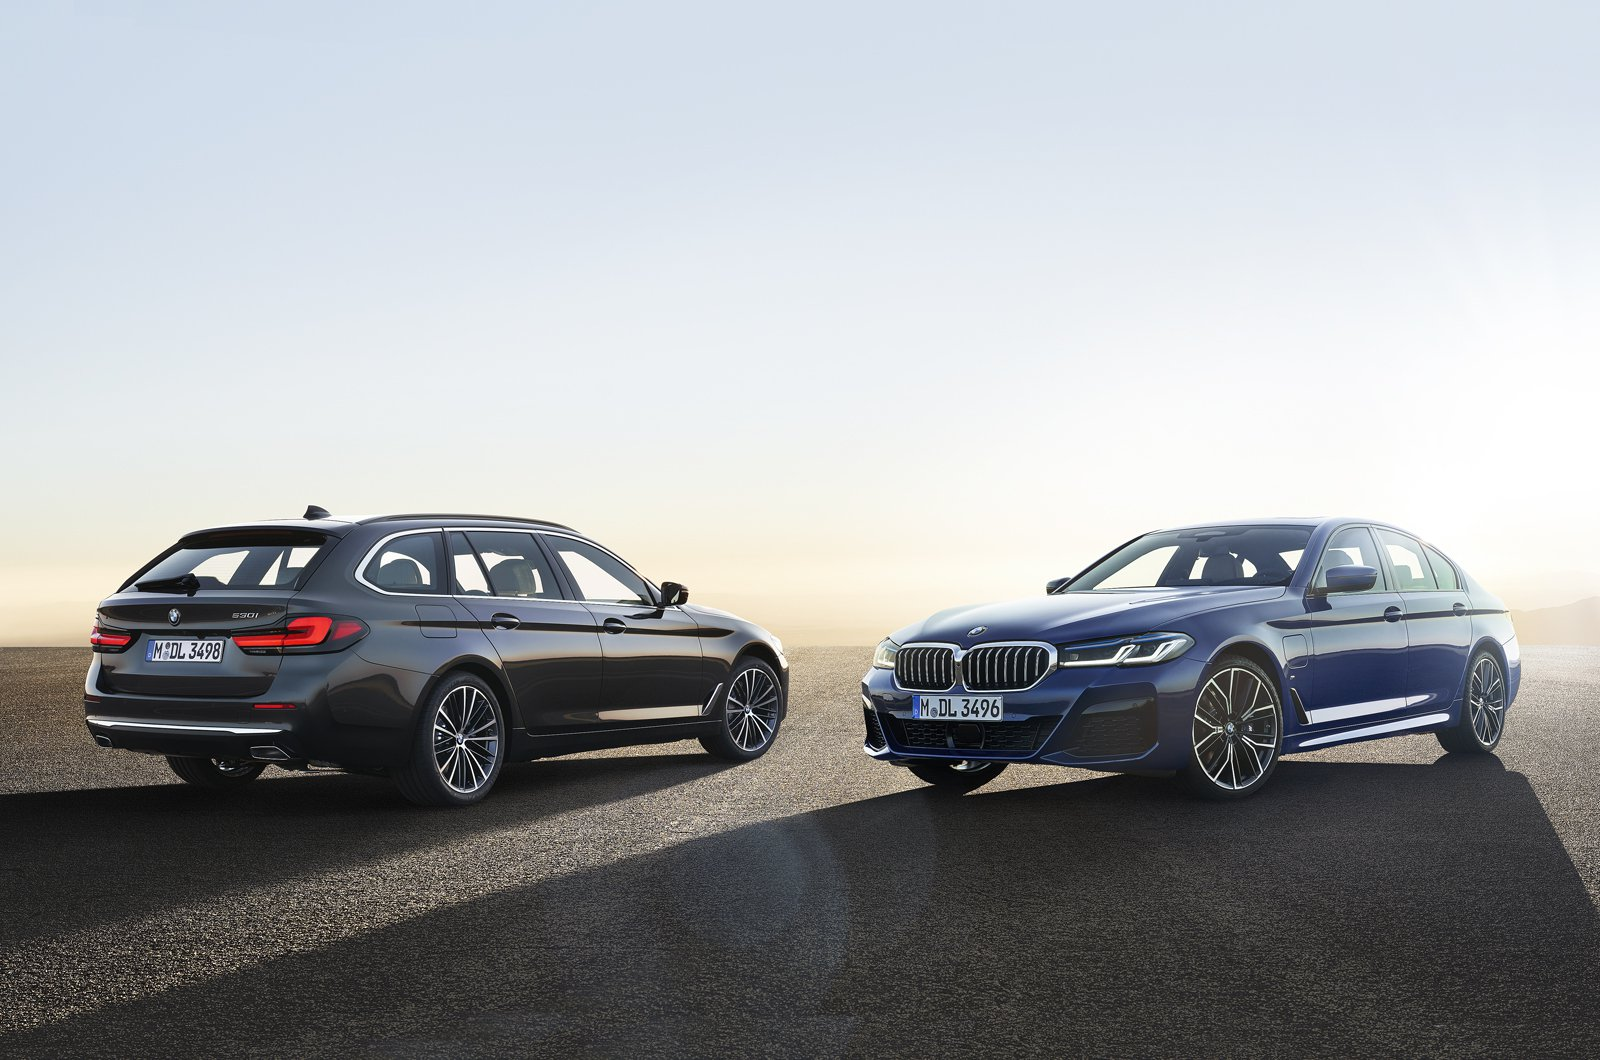 2021 BMW 5 Series Touring and saloon static - German plates